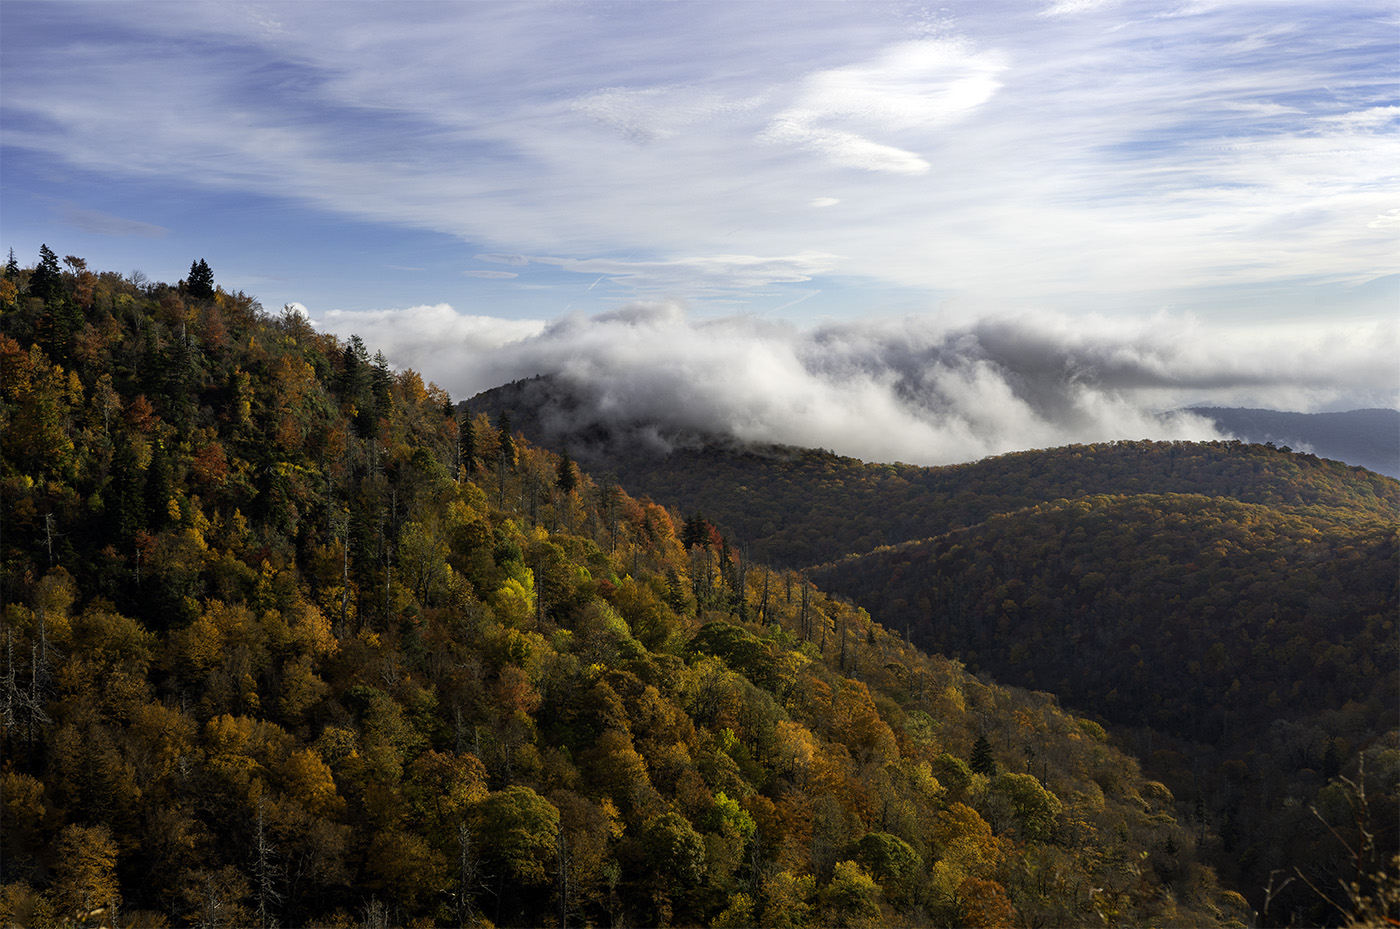 Fall tours in the Blue Ridge Mountains